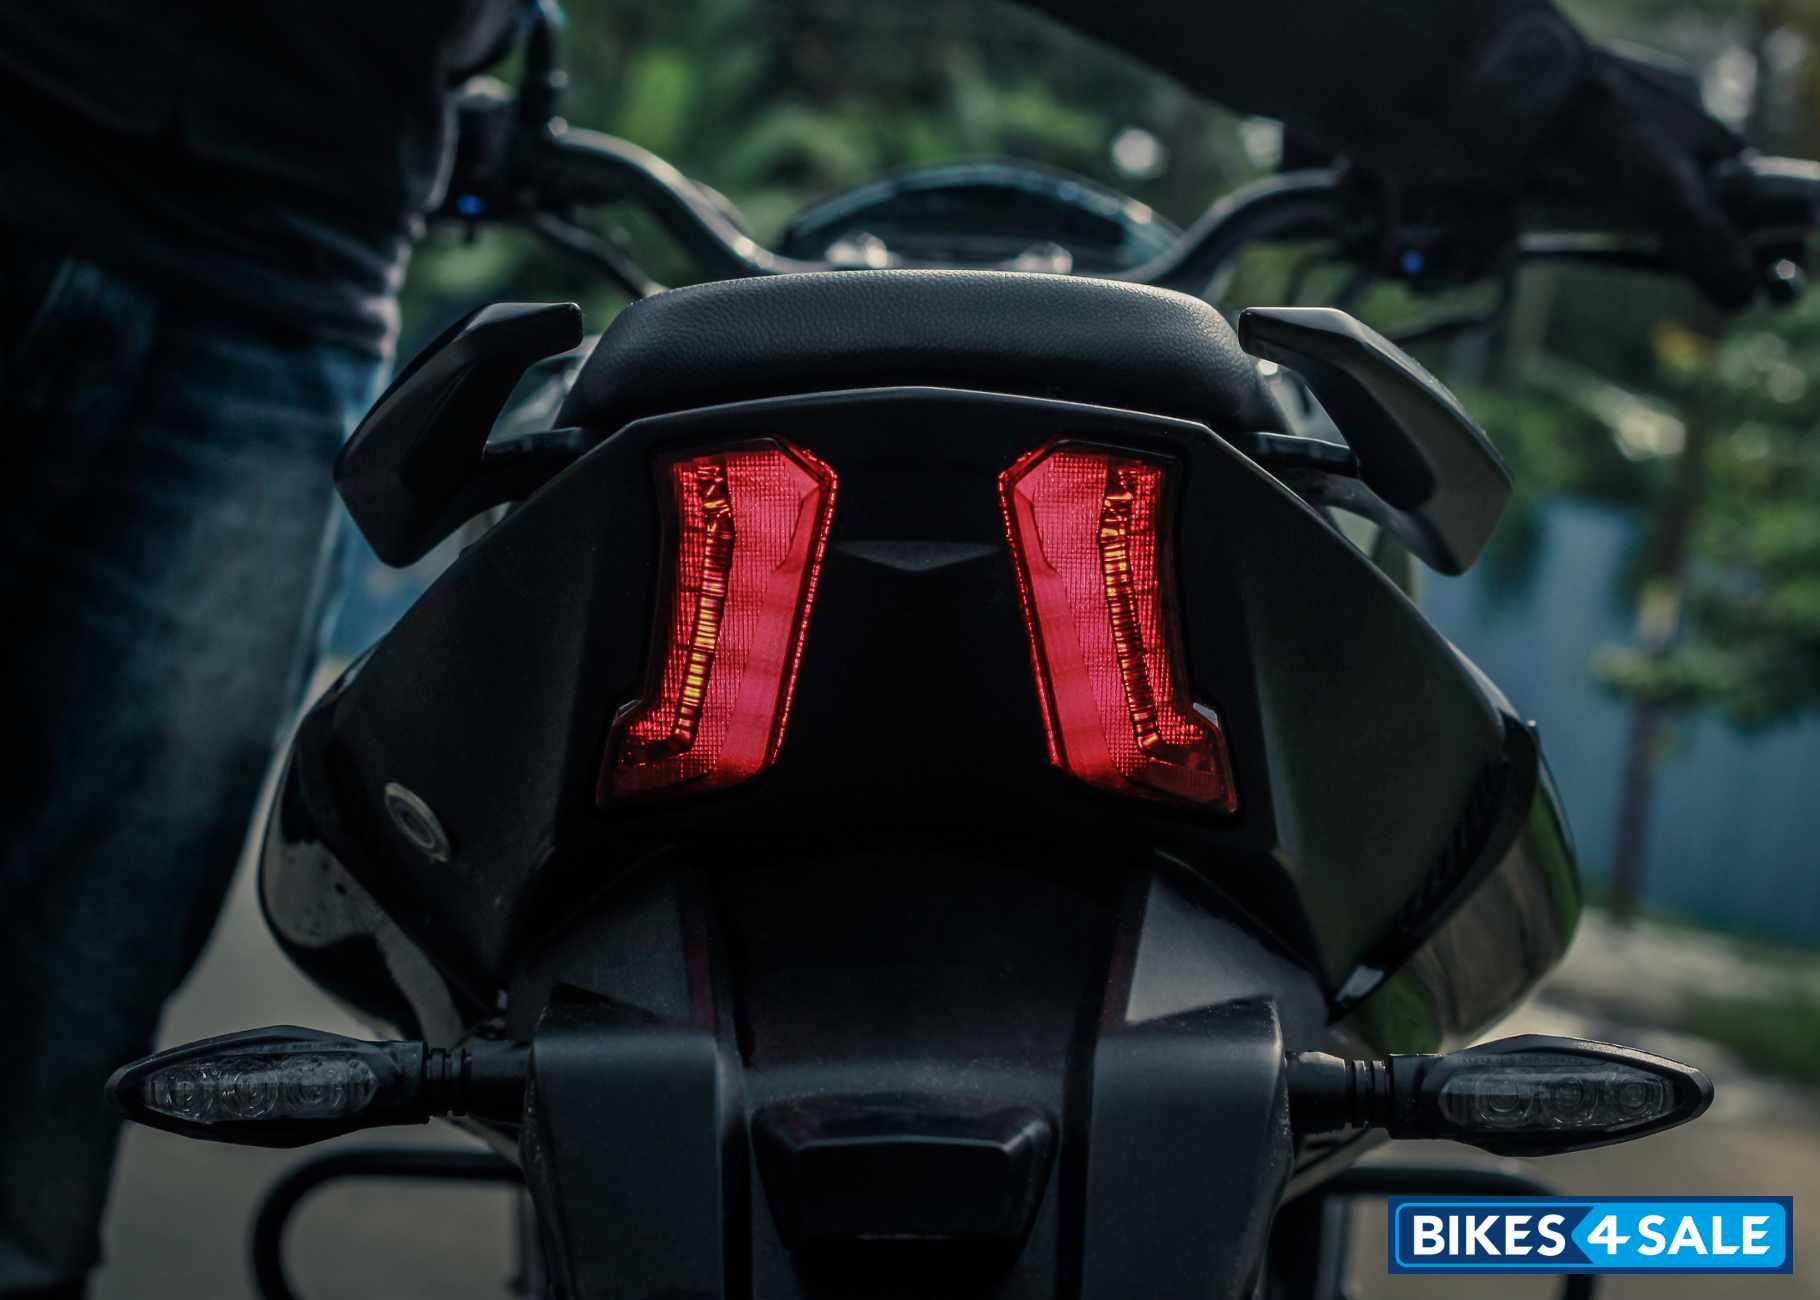 Bajaj Dominar 400 LED Tail Light